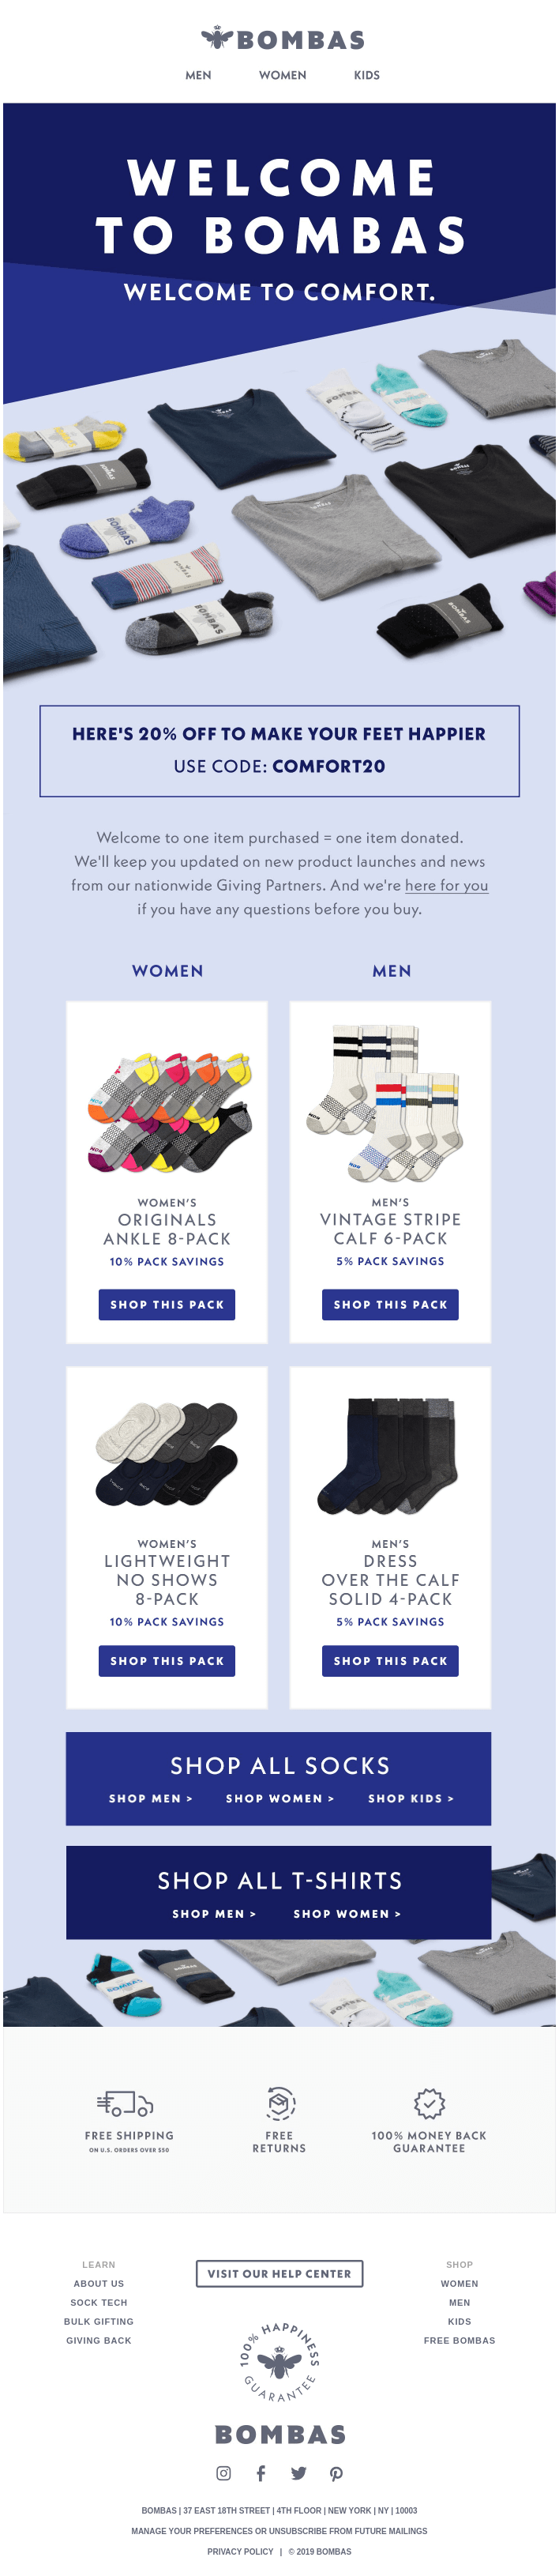 Treat yourself to Bombas socks at 20% off.